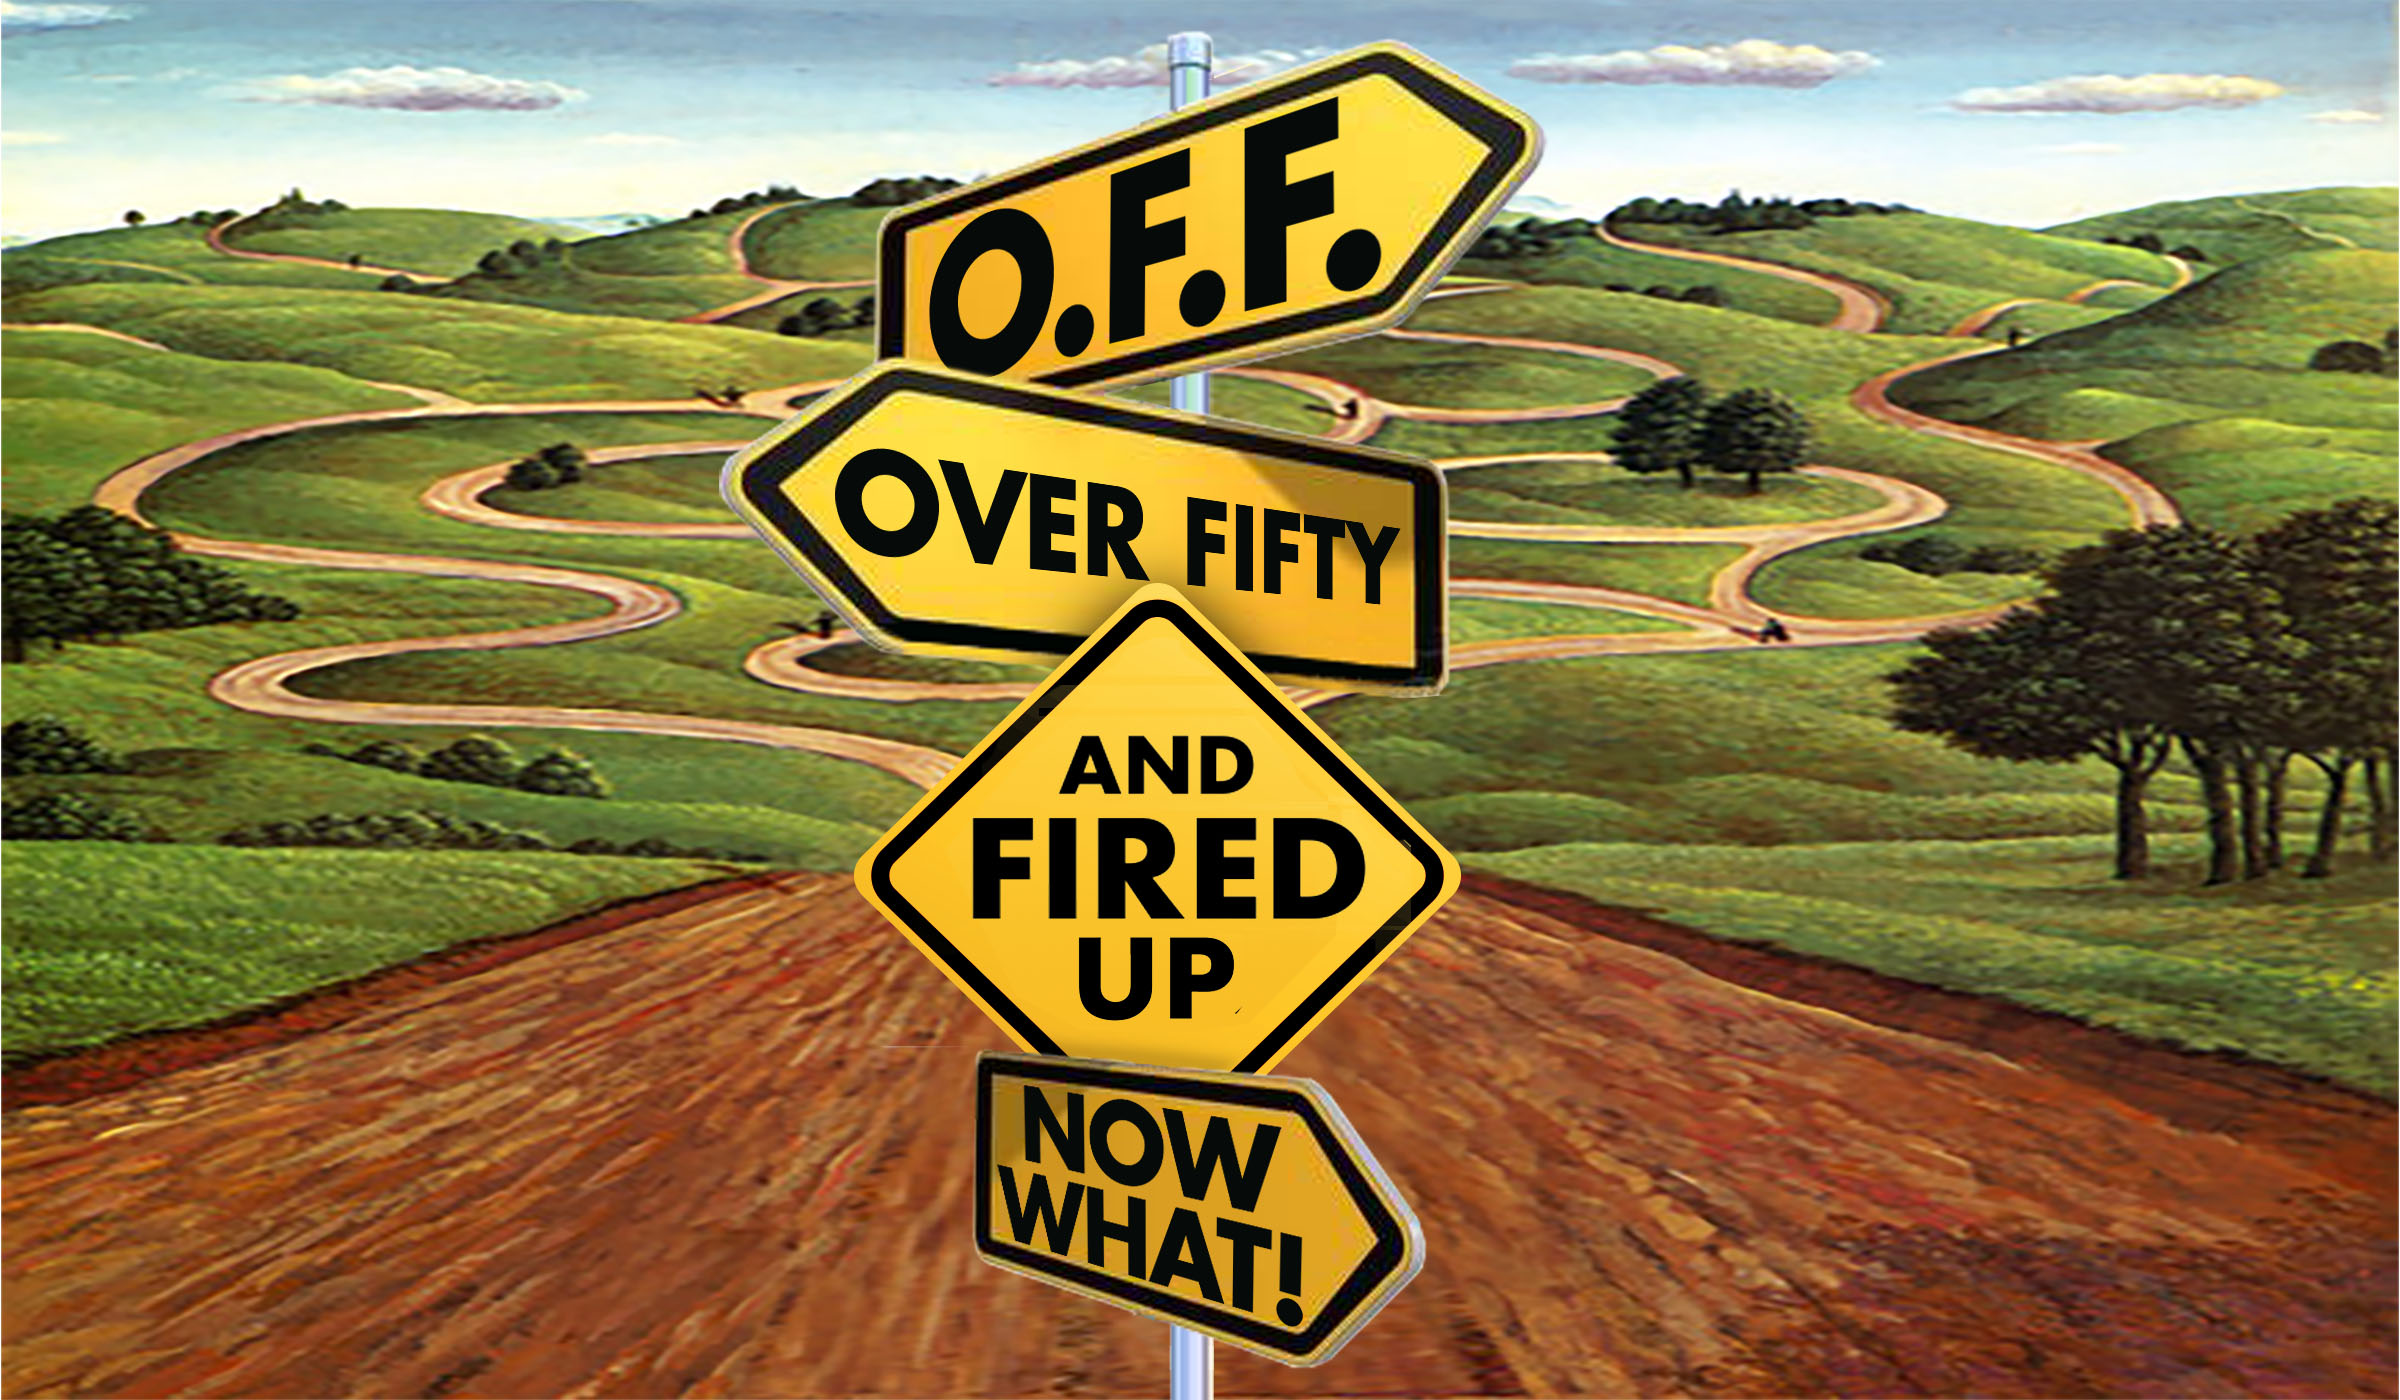 OFF Sign Winding Road 2400x1400.jpg